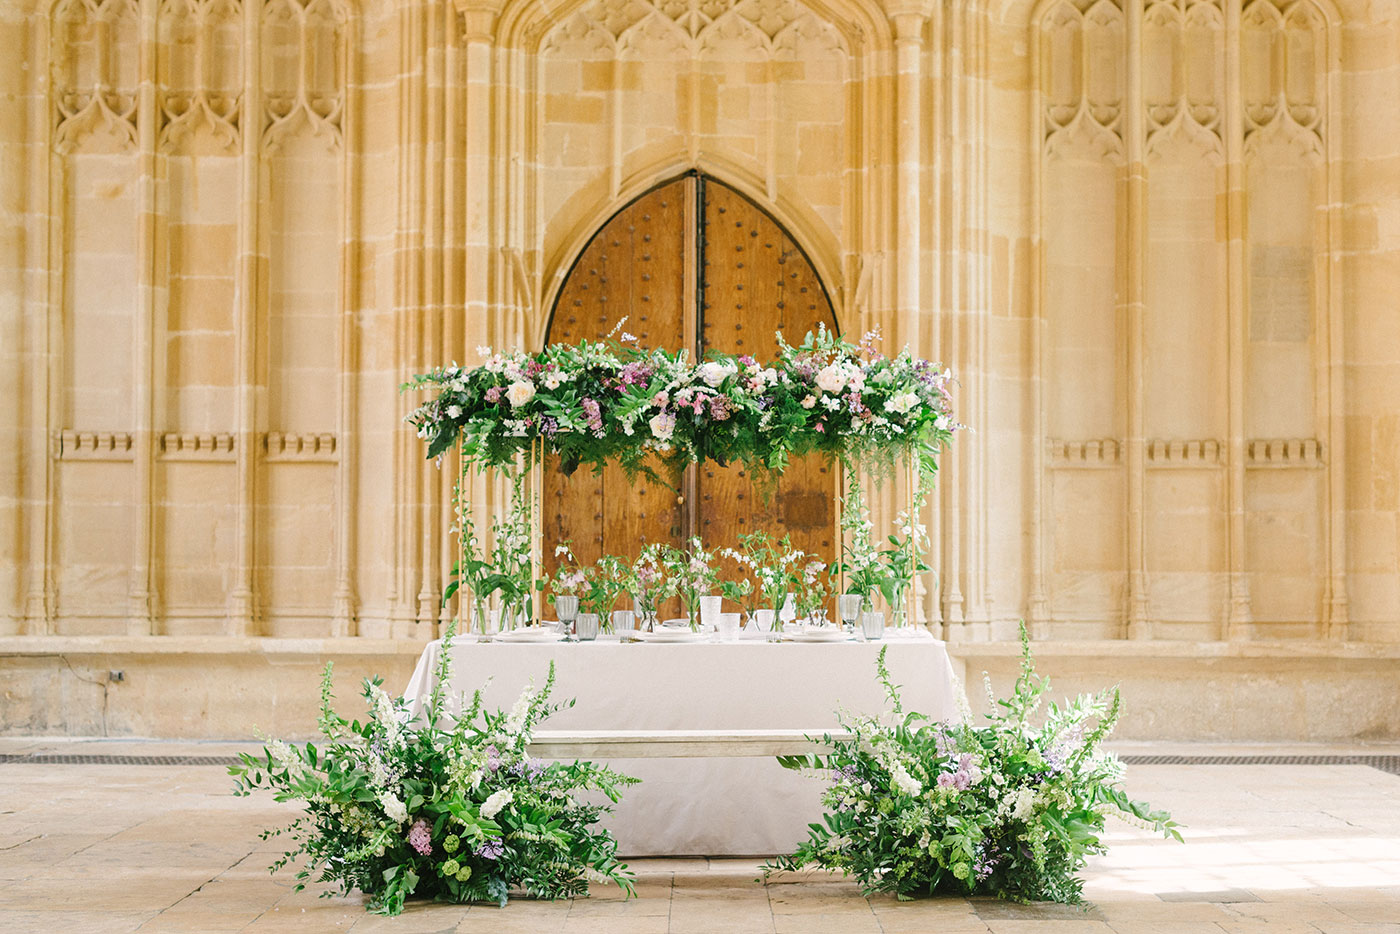 Bodleian Library Wedding Venue